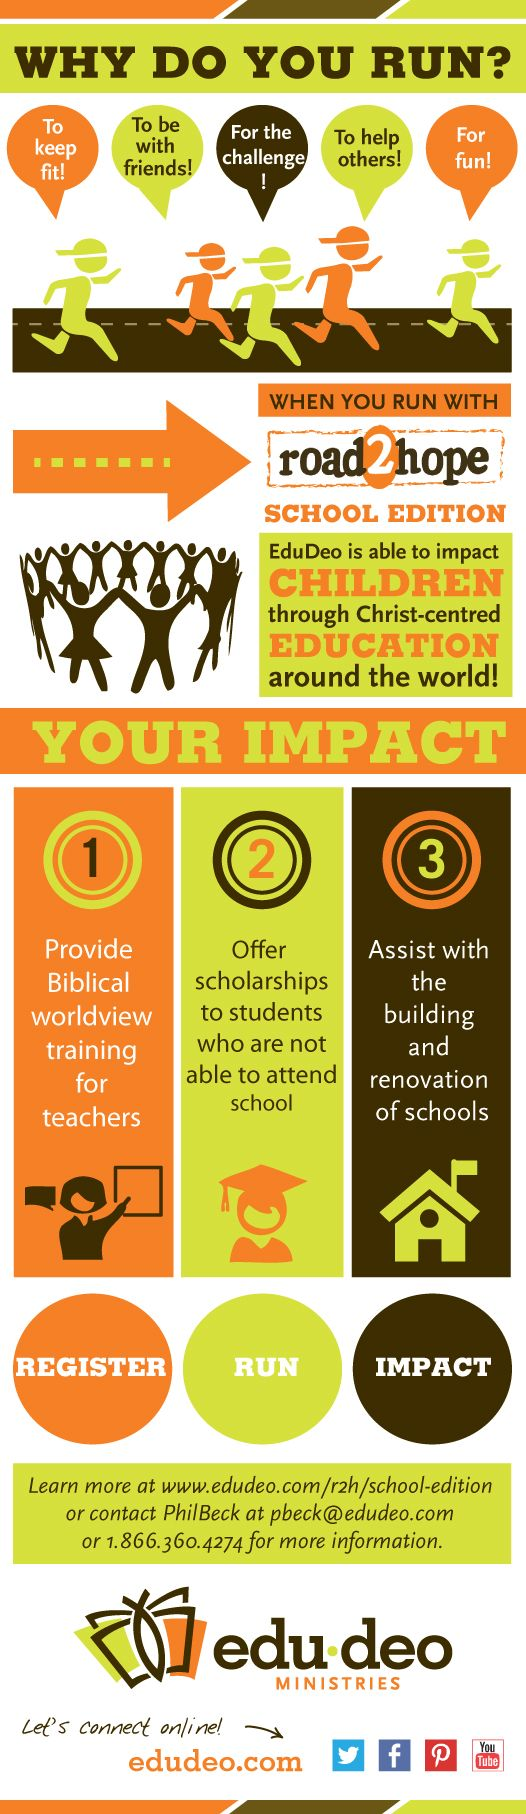 Register your school for Road2Hope: School Edition and help make an impact on Children through Christ-centred education around the world! #Run2Impact #Road2Hope #Education